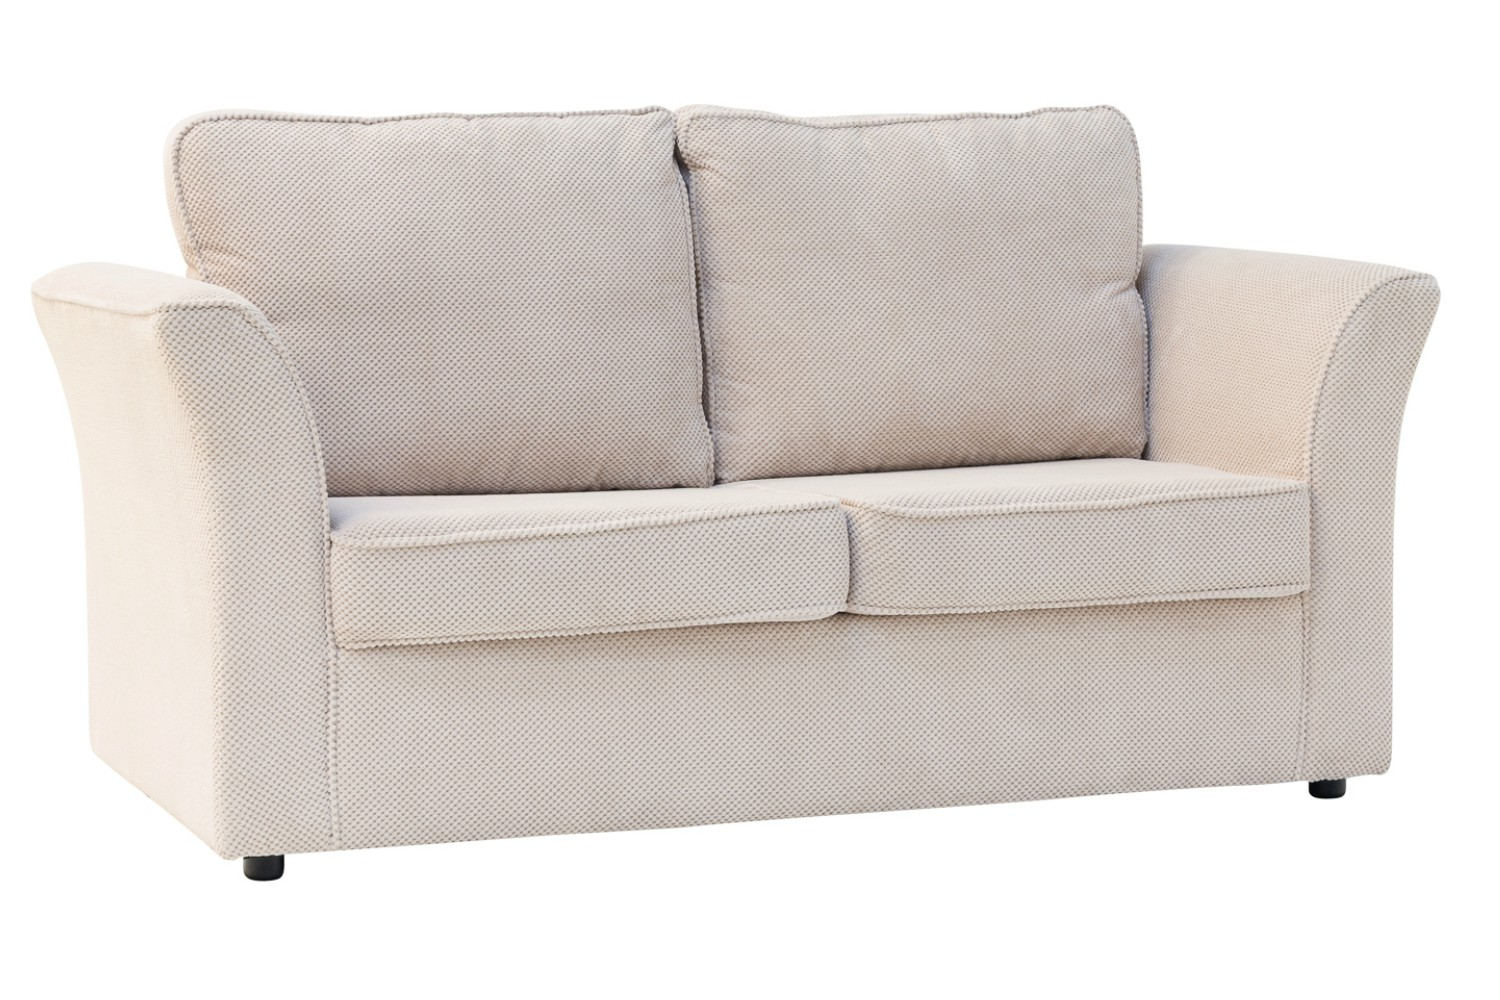 Sofa Sale Harveys Nexus 2 Seater Sofa Bed Shop At Harvey Norman Harvey Norman